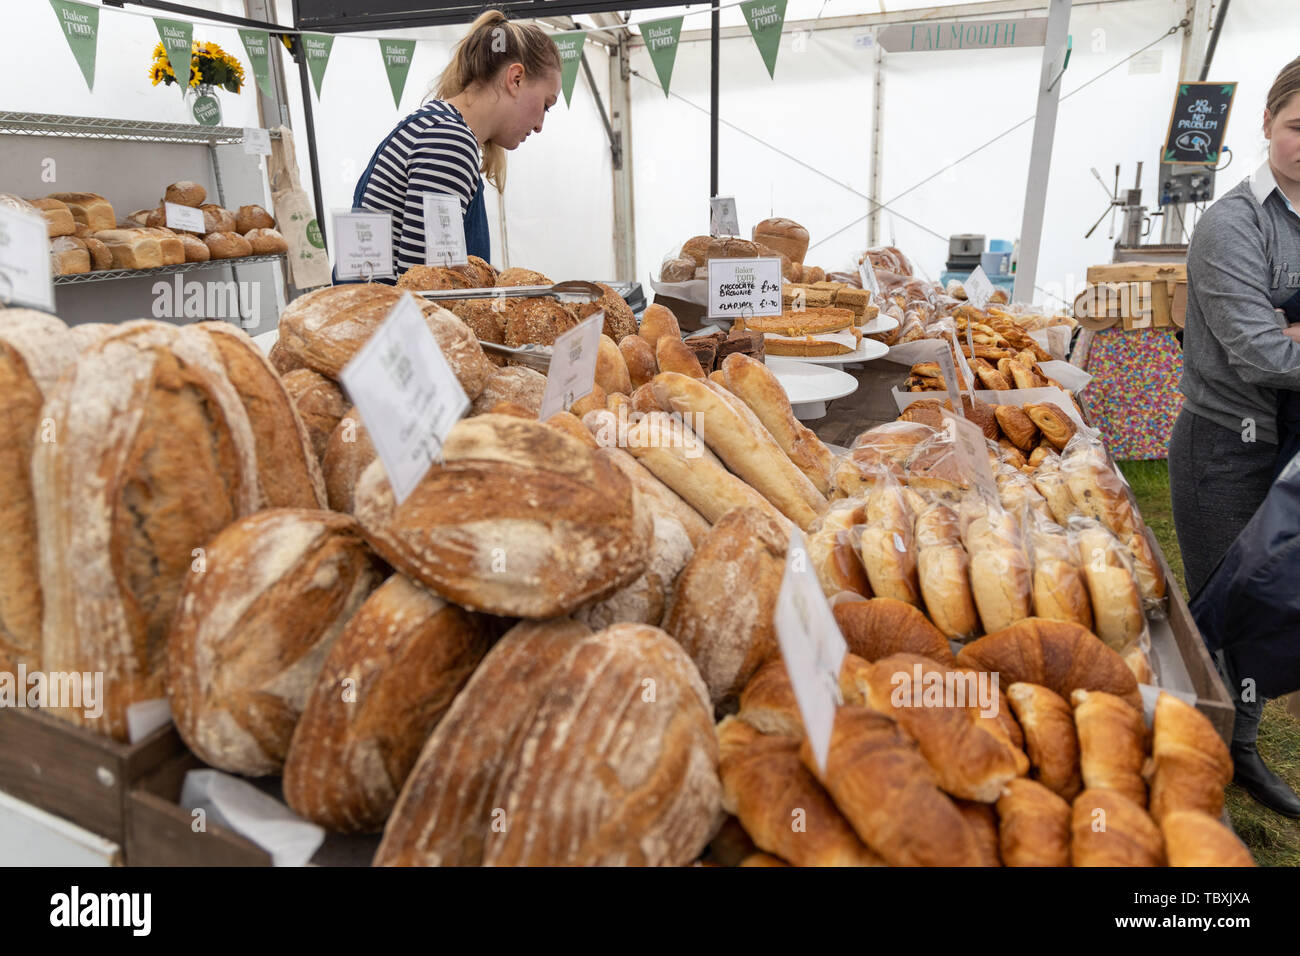 Bakery Stall at the Devon County Show - Stock Image